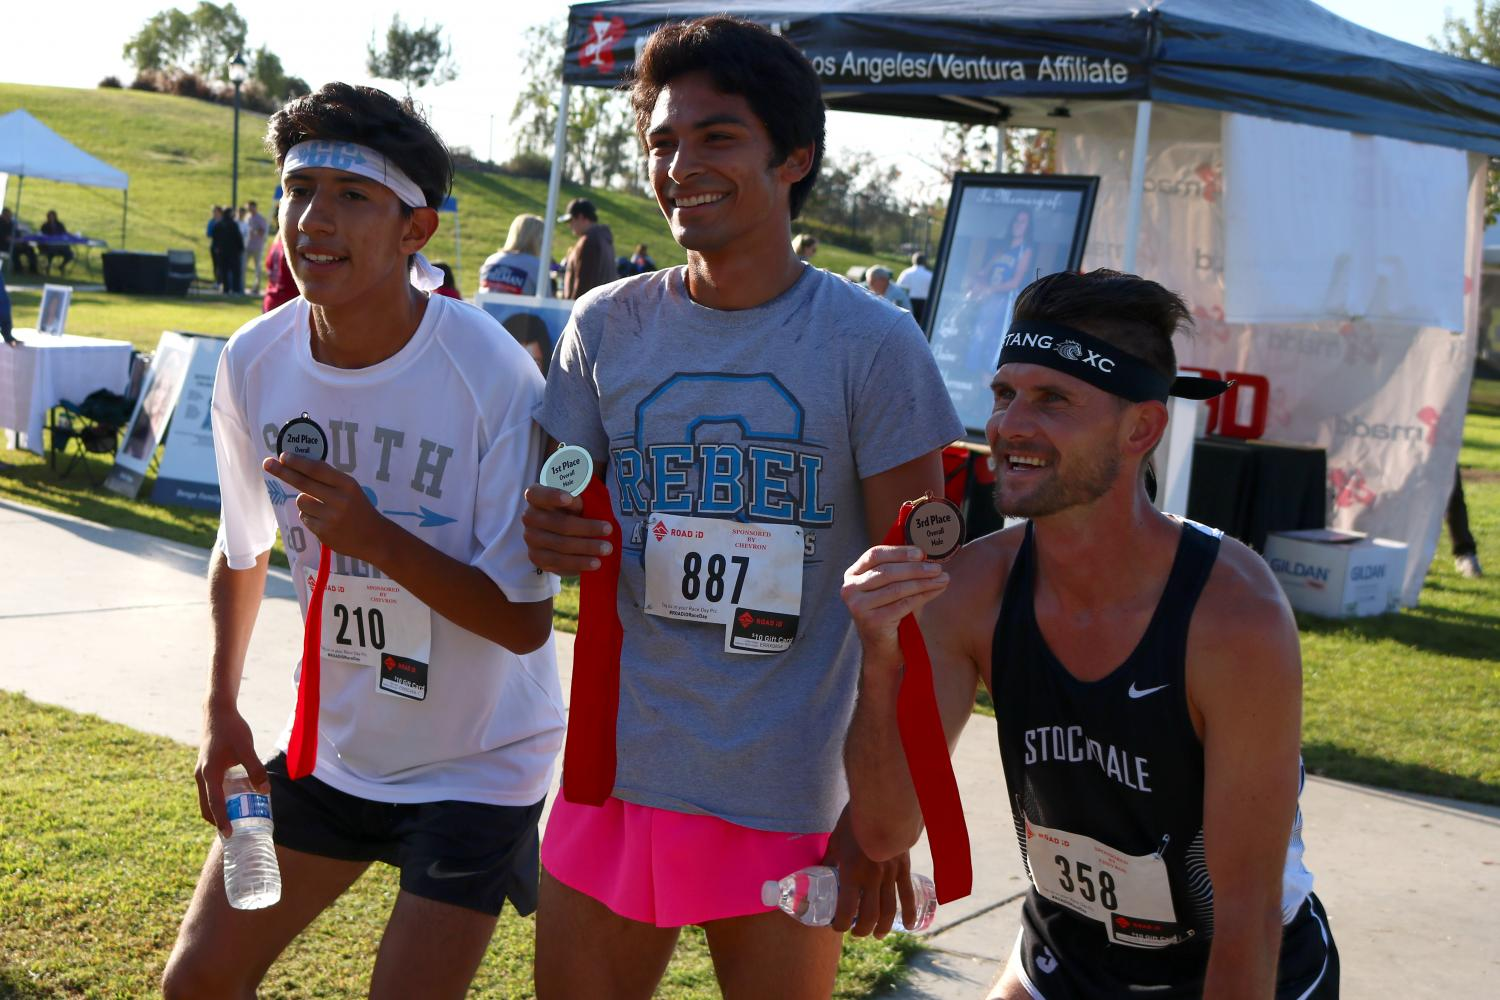 Sebastian Garcia, Mark Gulesian and Ryan Lucker show off their medals after participating in the MADD Dash event.